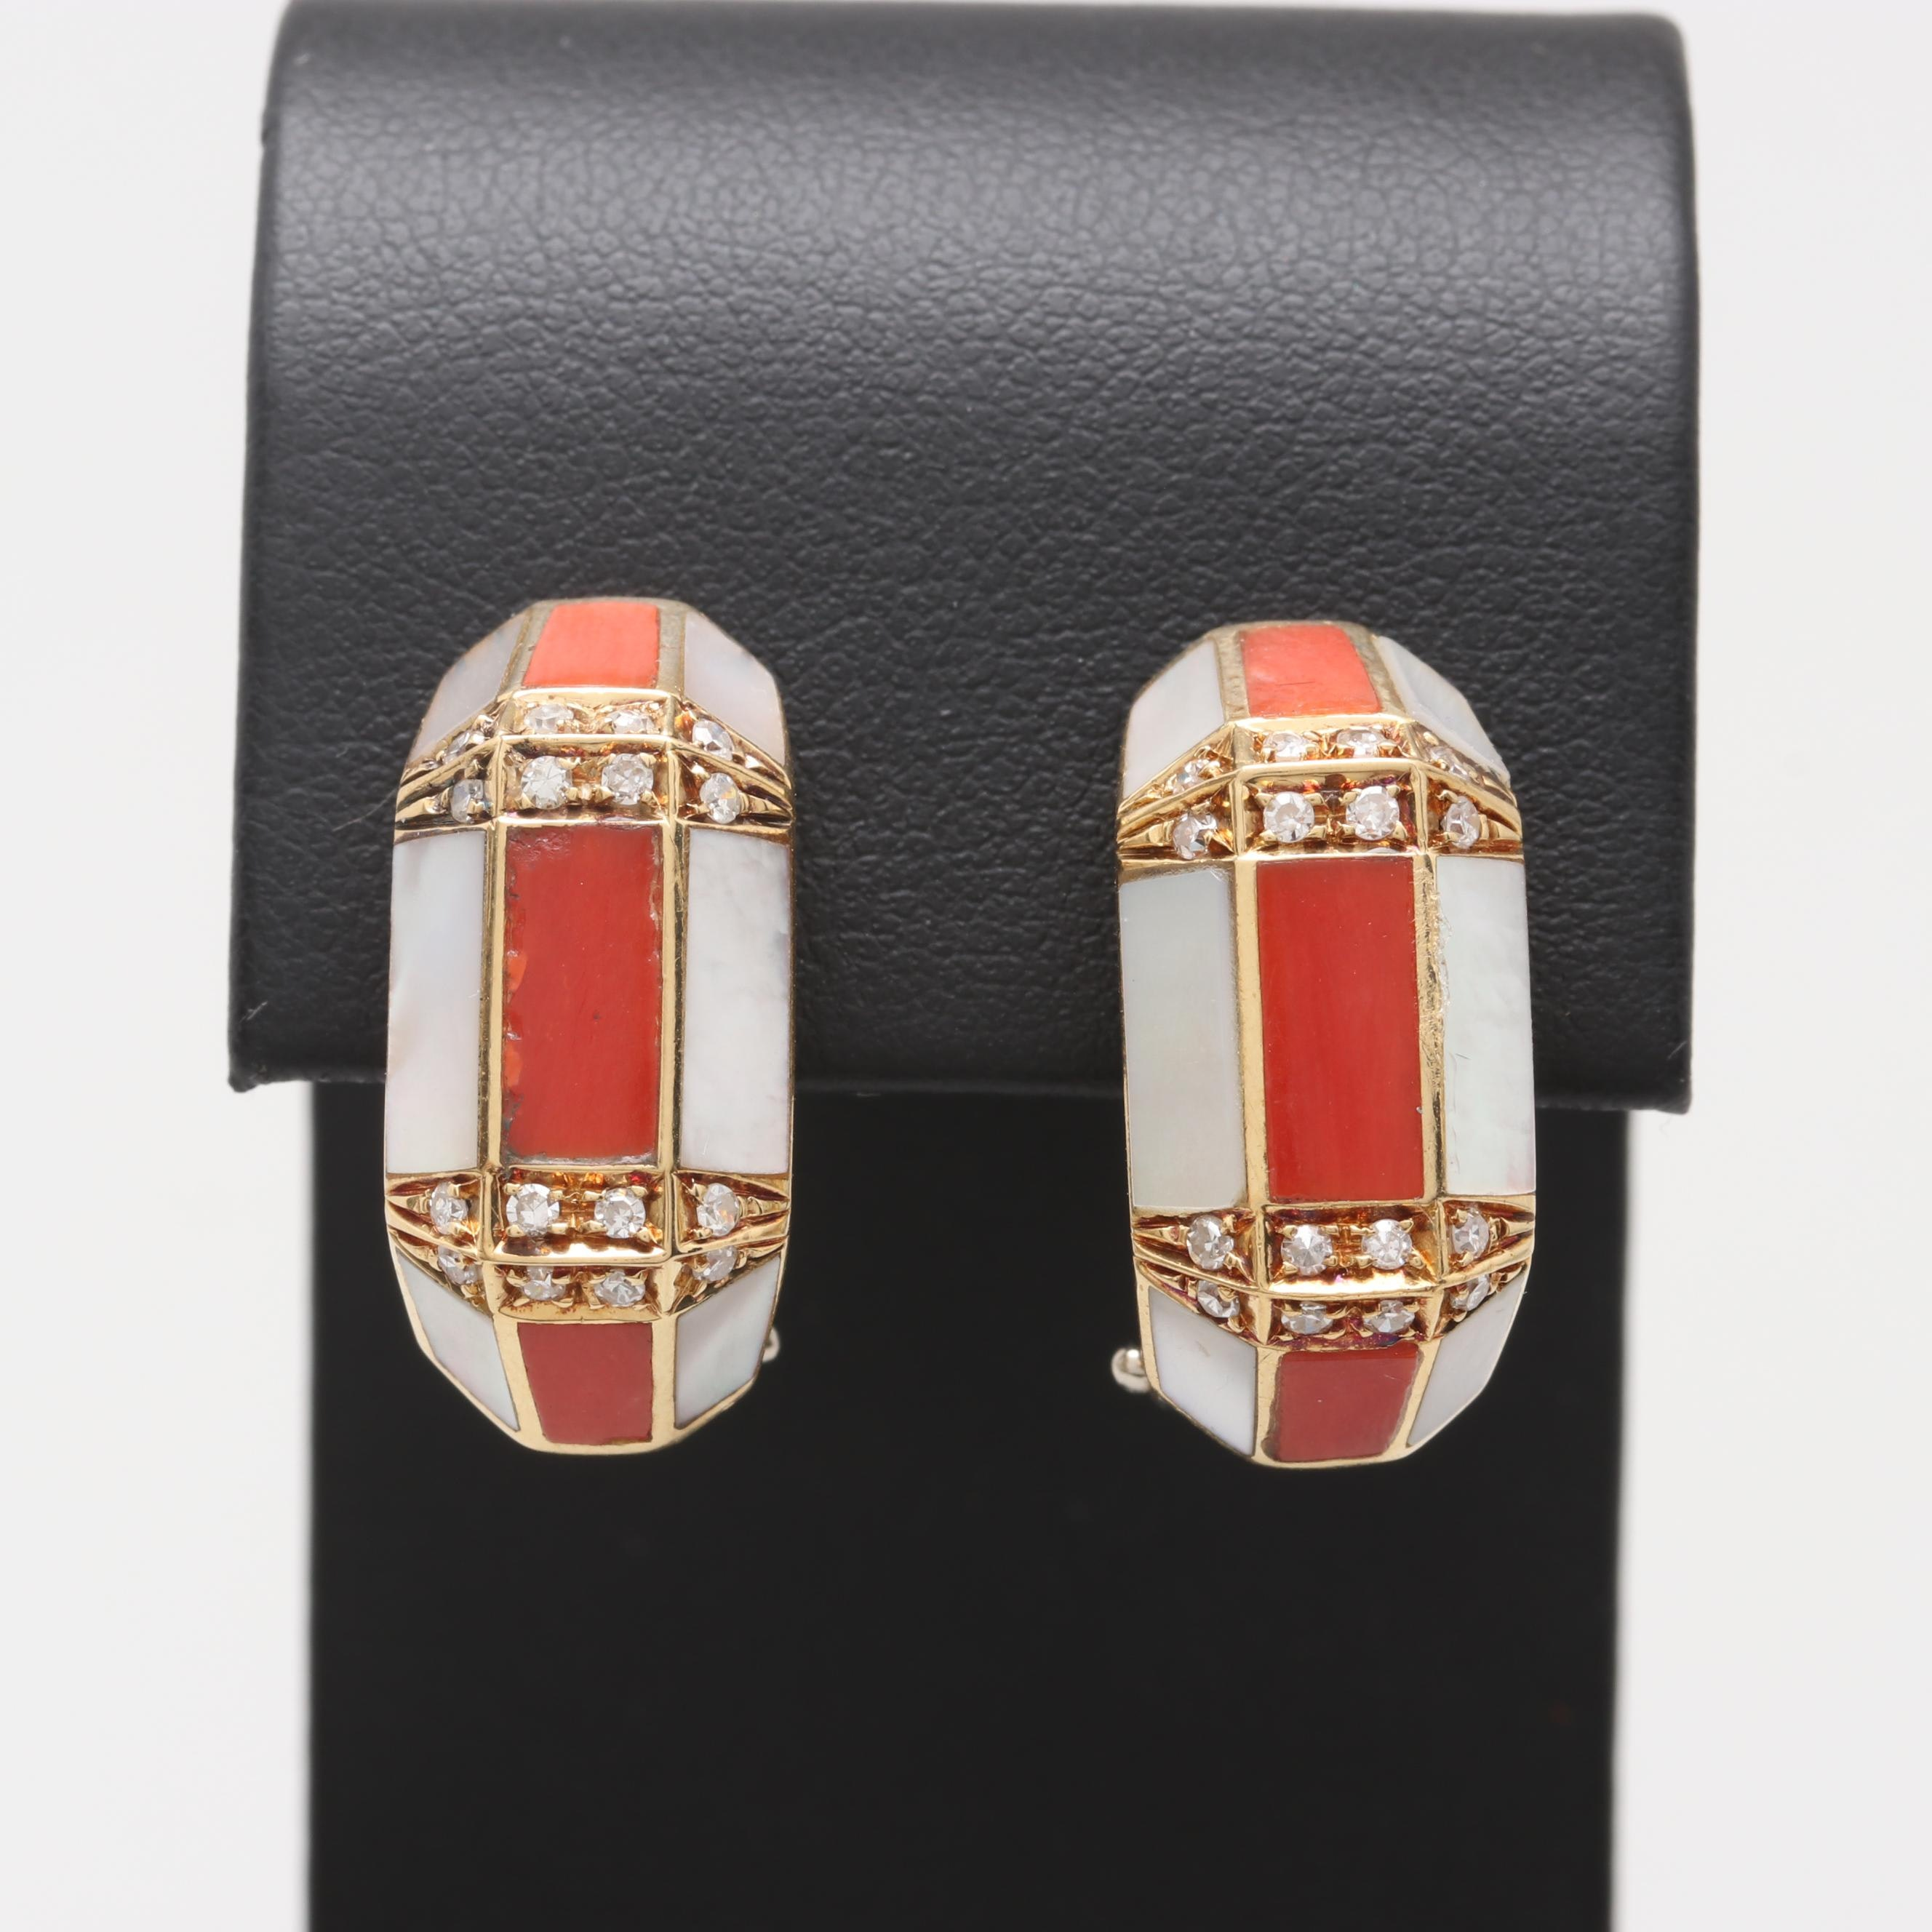 18K Yellow and White Gold Diamond, Coral, and Mother of Pearl Earrings